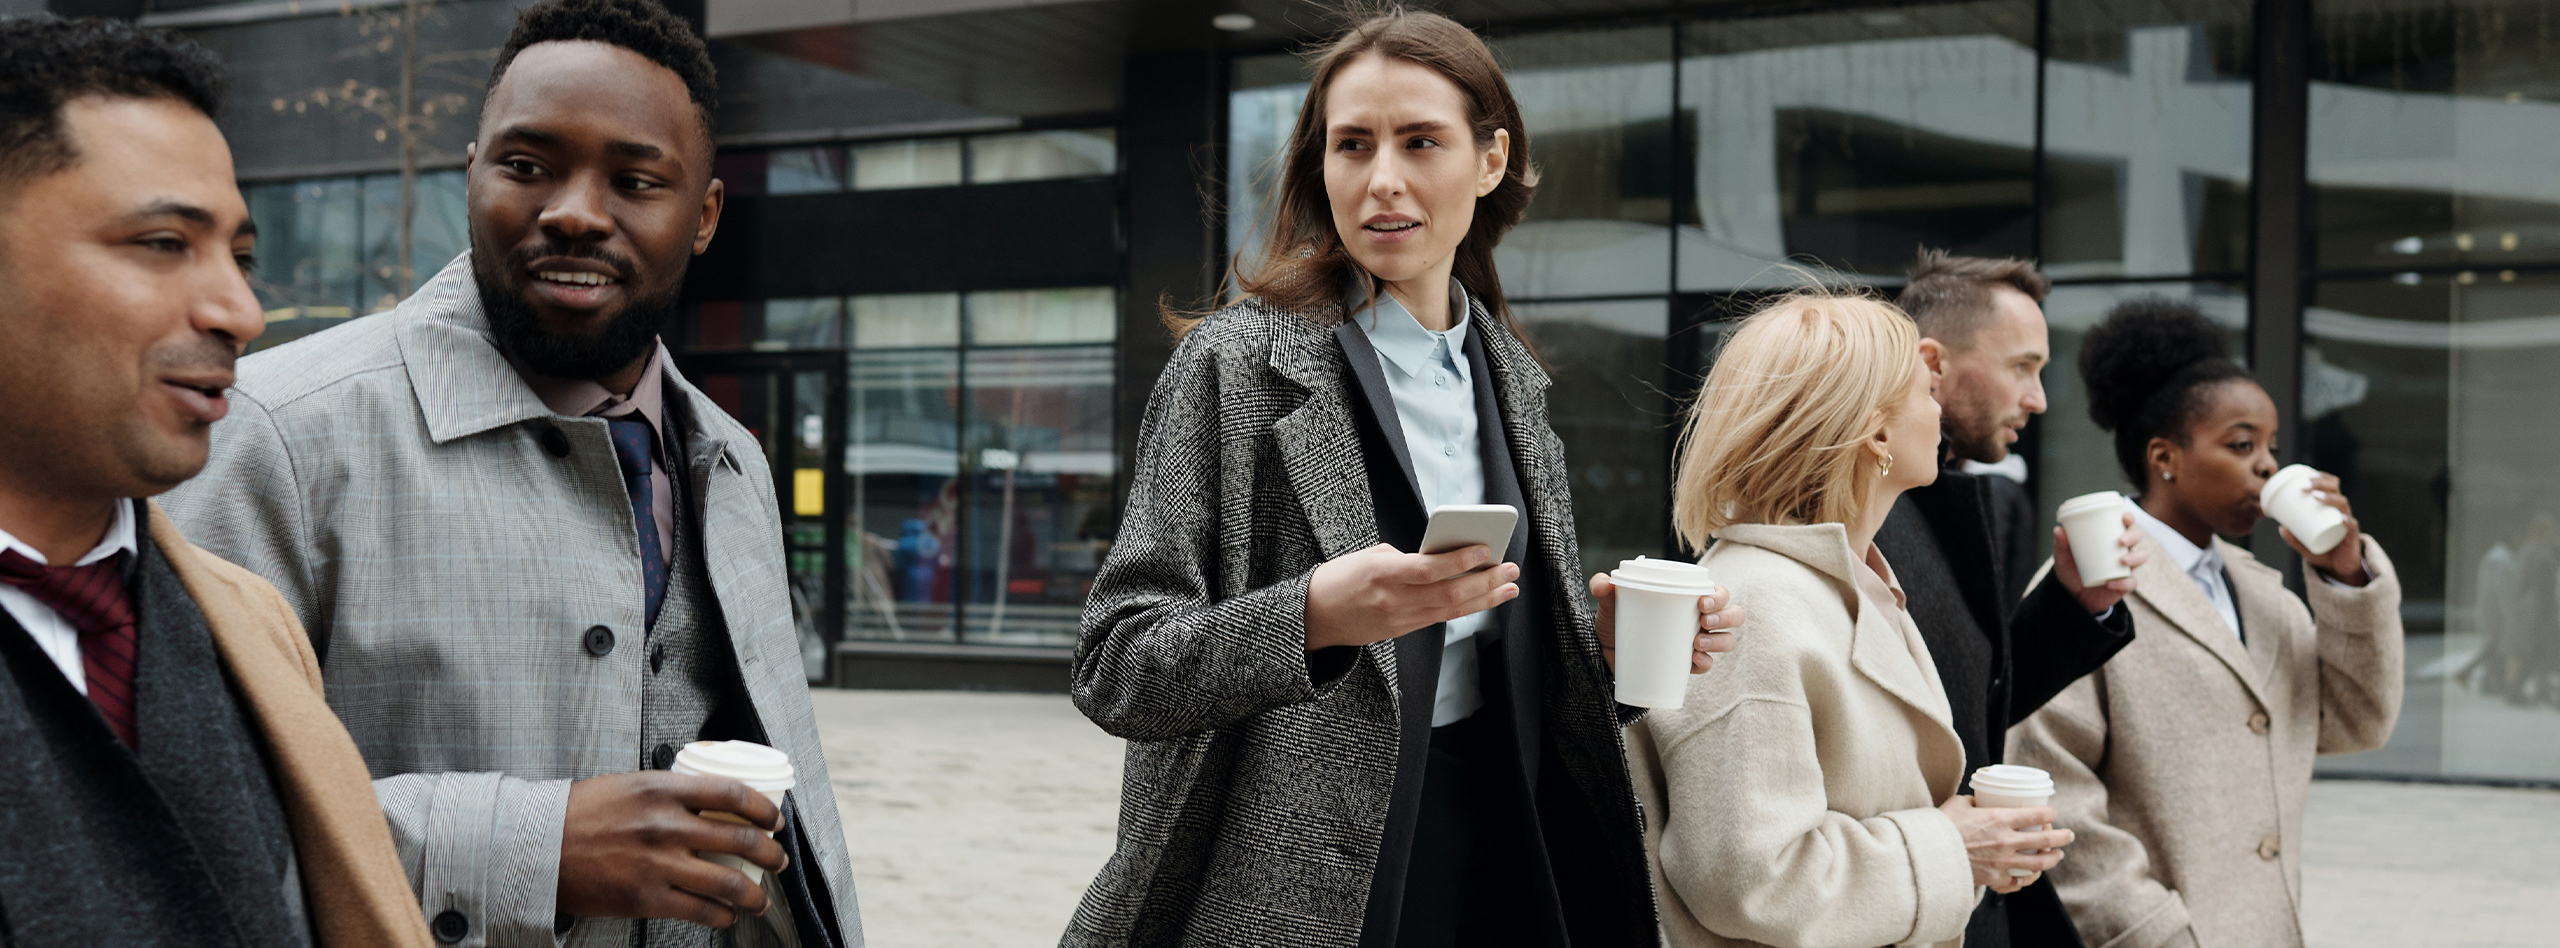 The benefits of walking meetings and food on the go